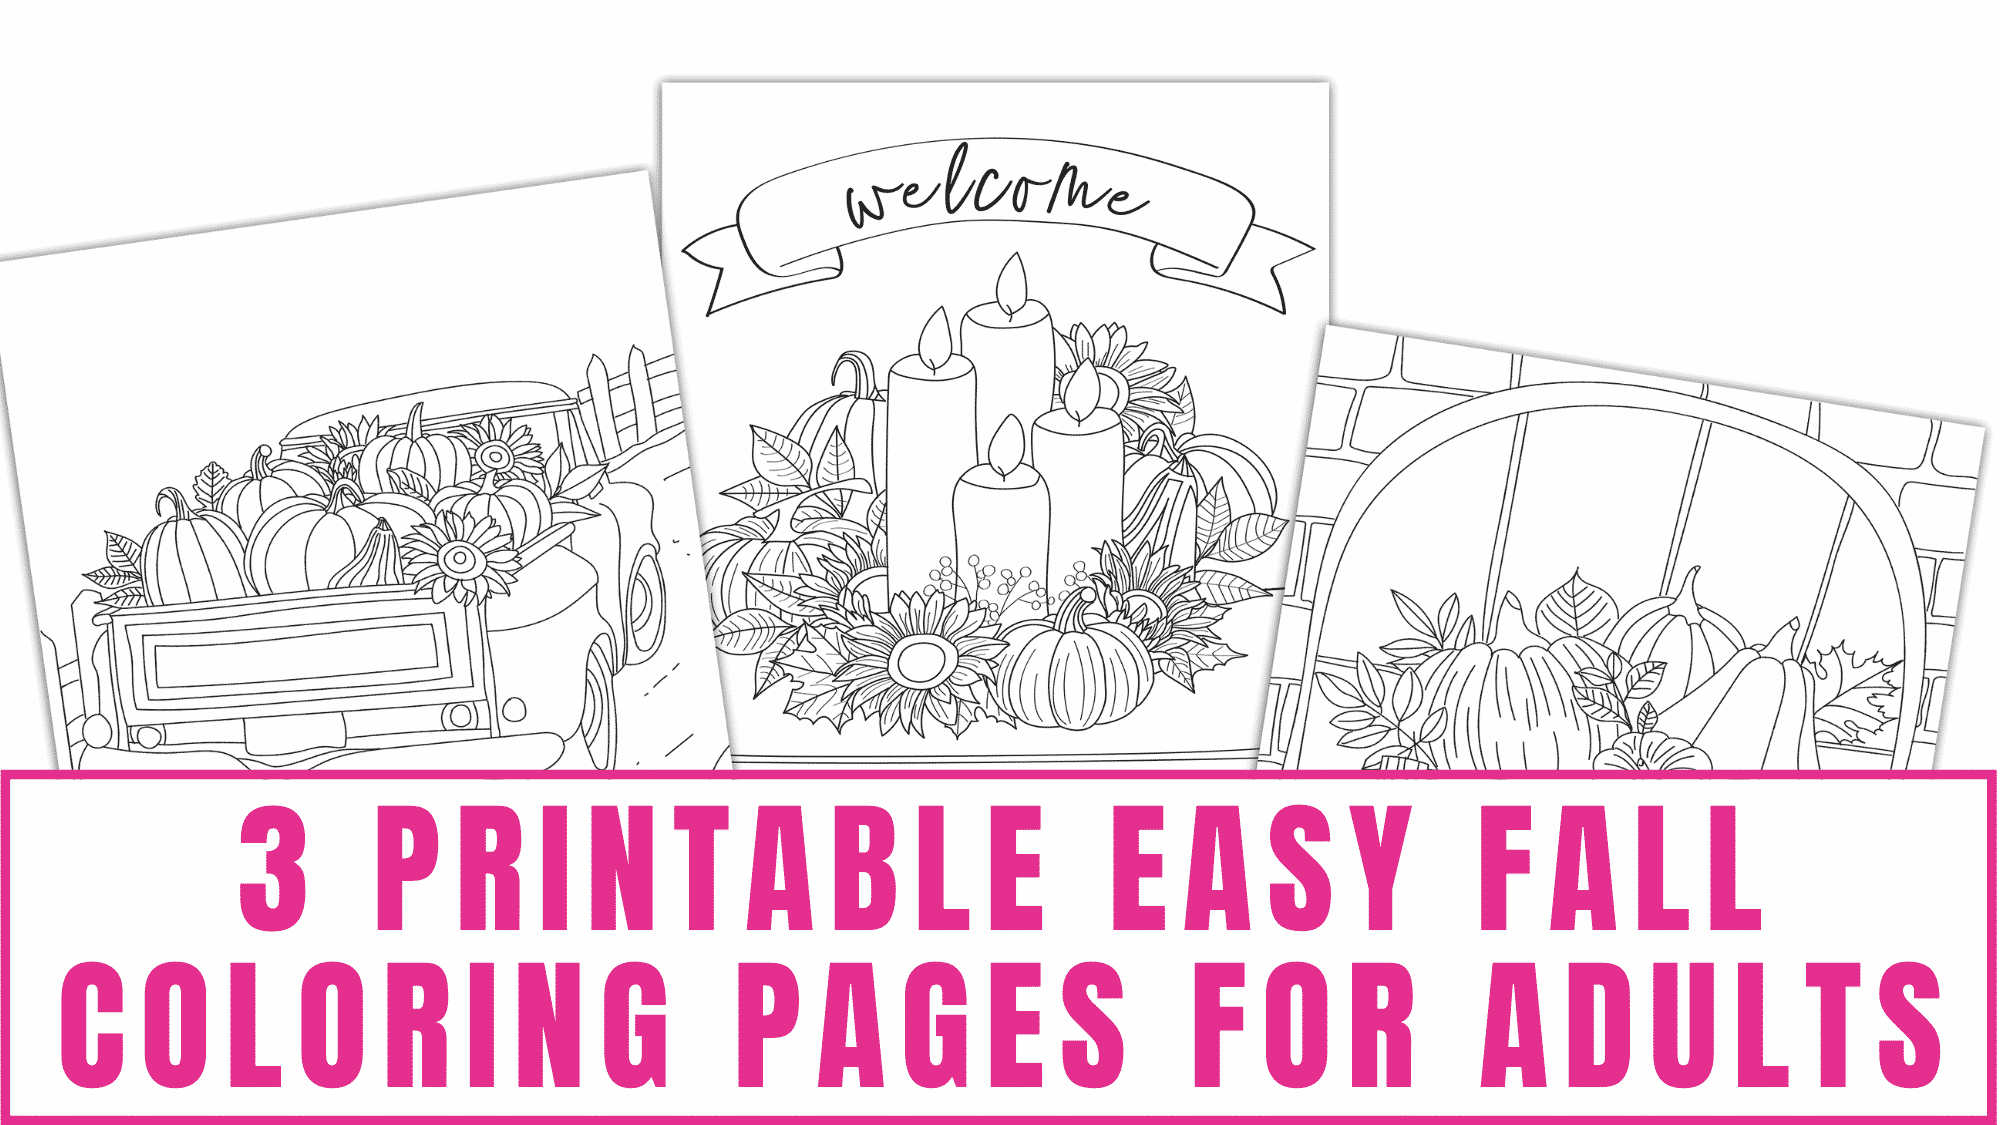 After these beautiful printable easy fall coloring pages for adults are colored you can proudly display them because they will make pretty DIY fall decorations.